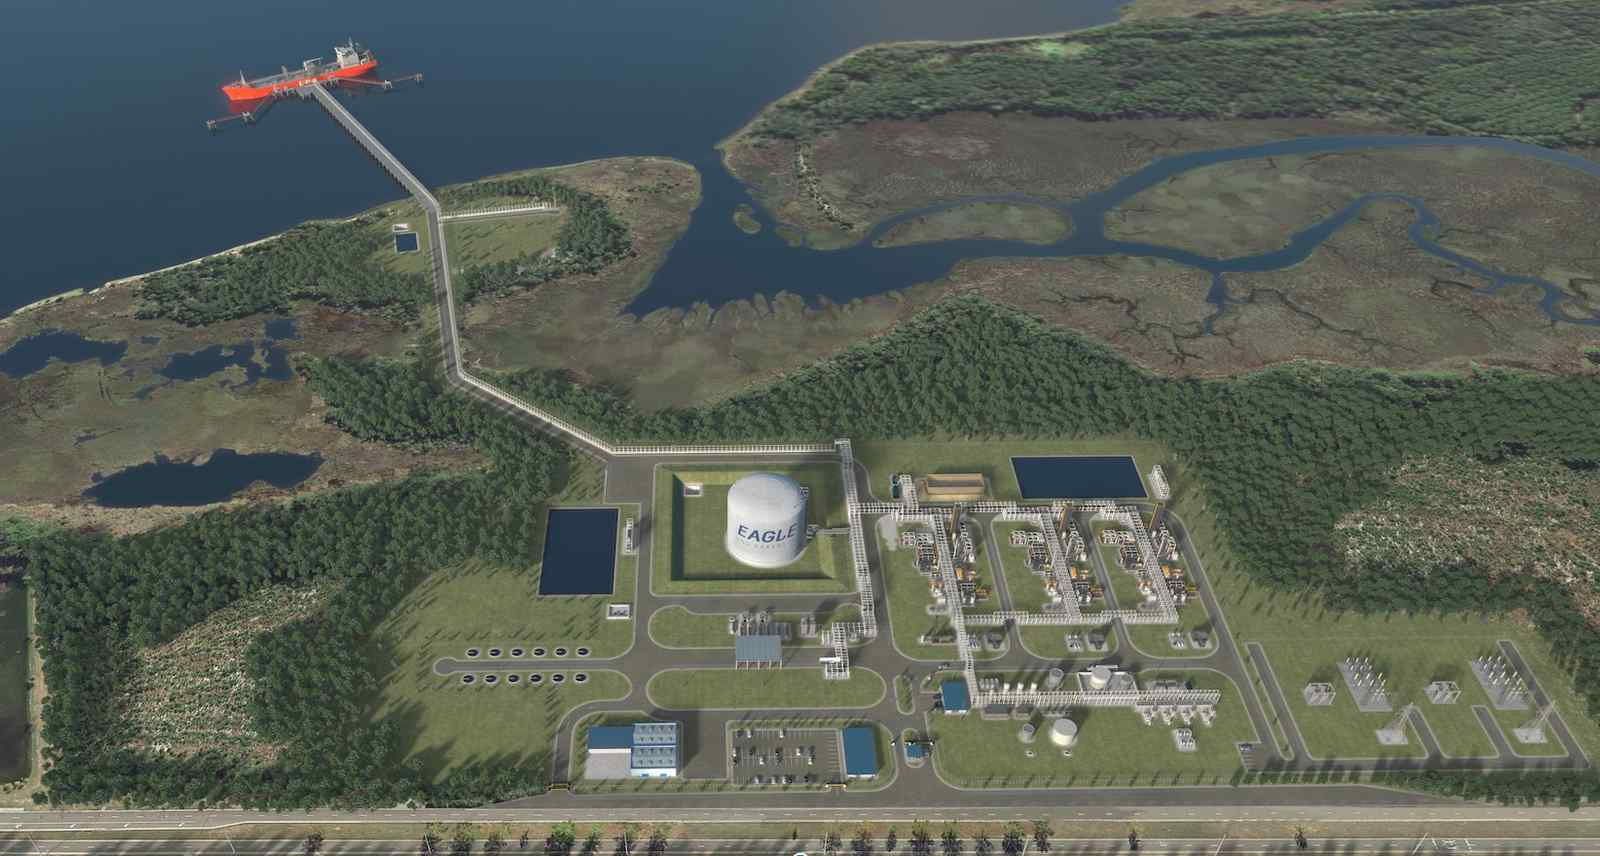 S&P Global Platts: US regulators give Eagle LNG positive final environmental review